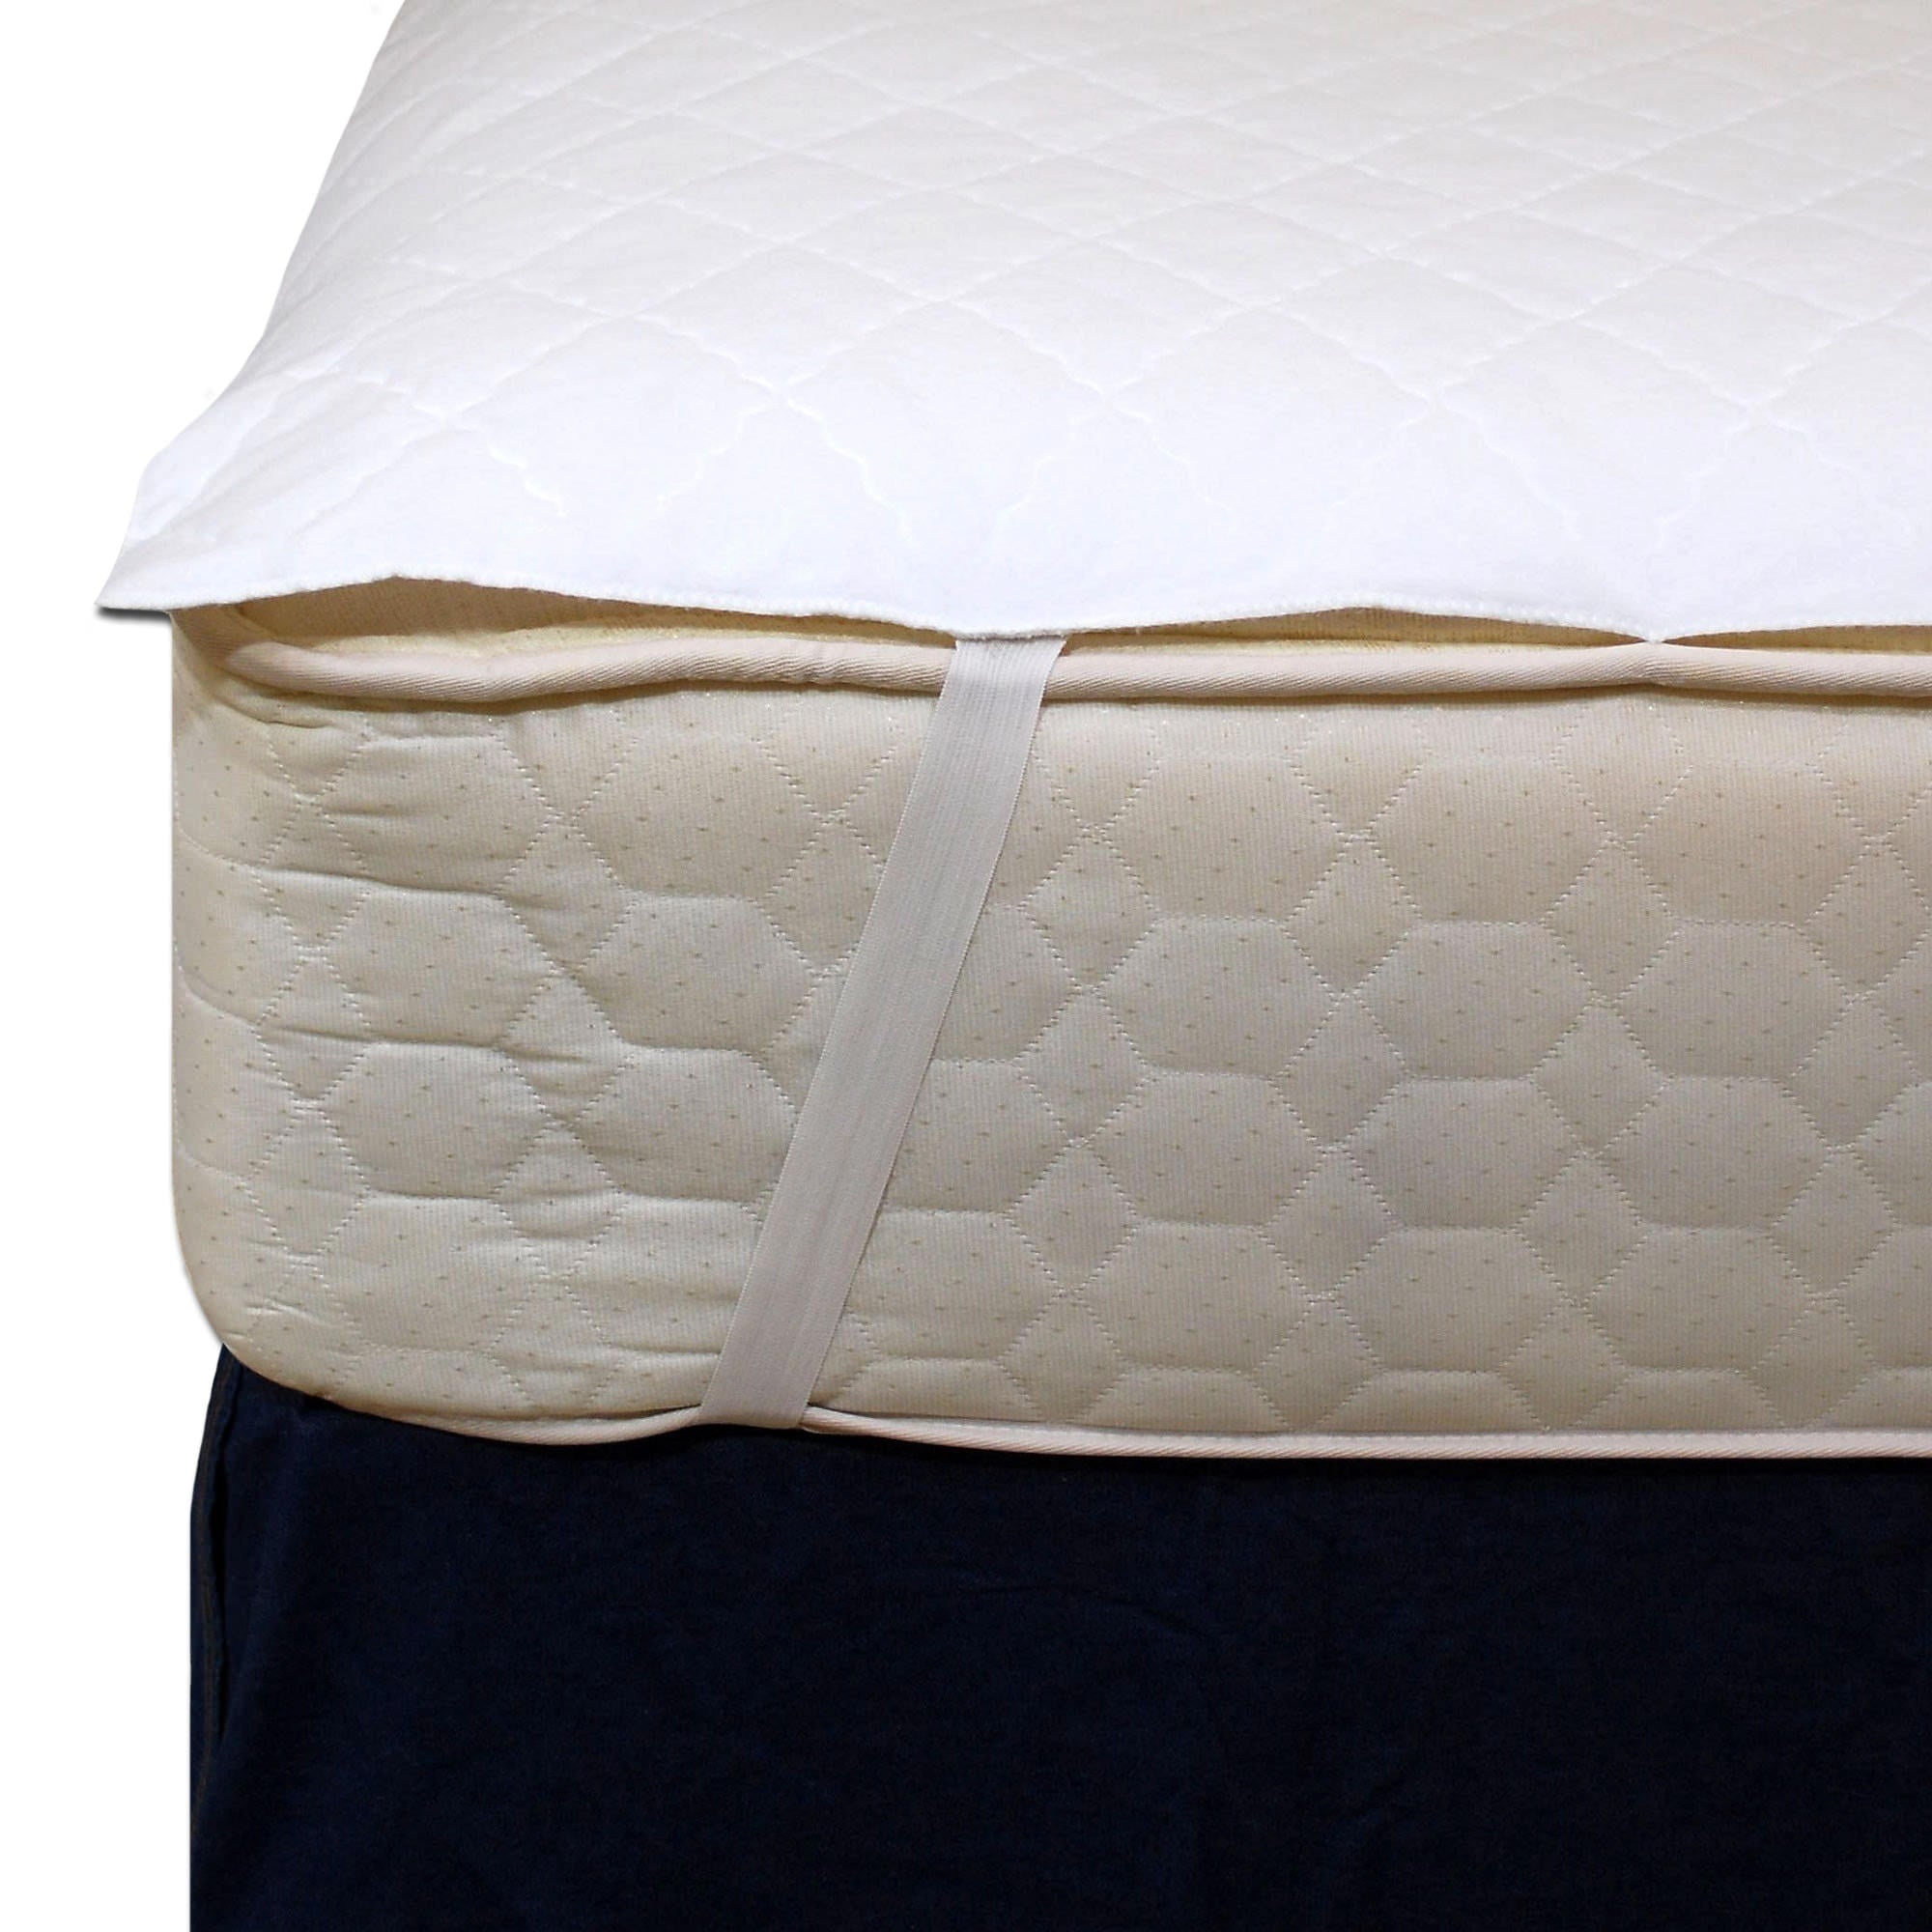 Bedding-Waterproof Mattress Pad, Anchor Band Style